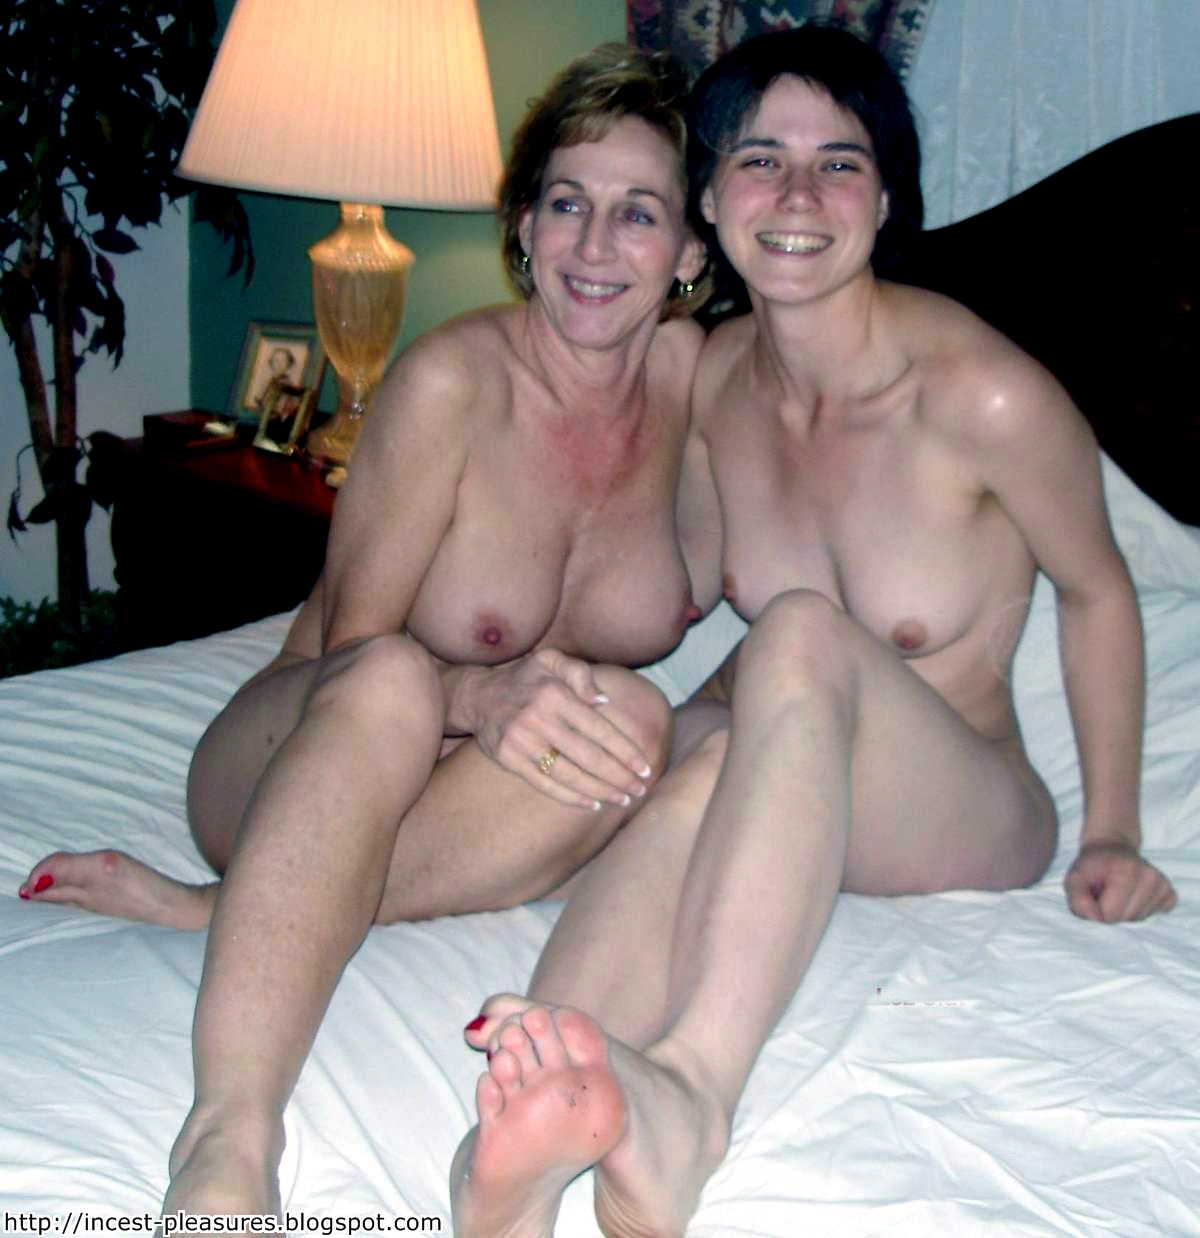 mom-with-son-and-daughter-sex-photos